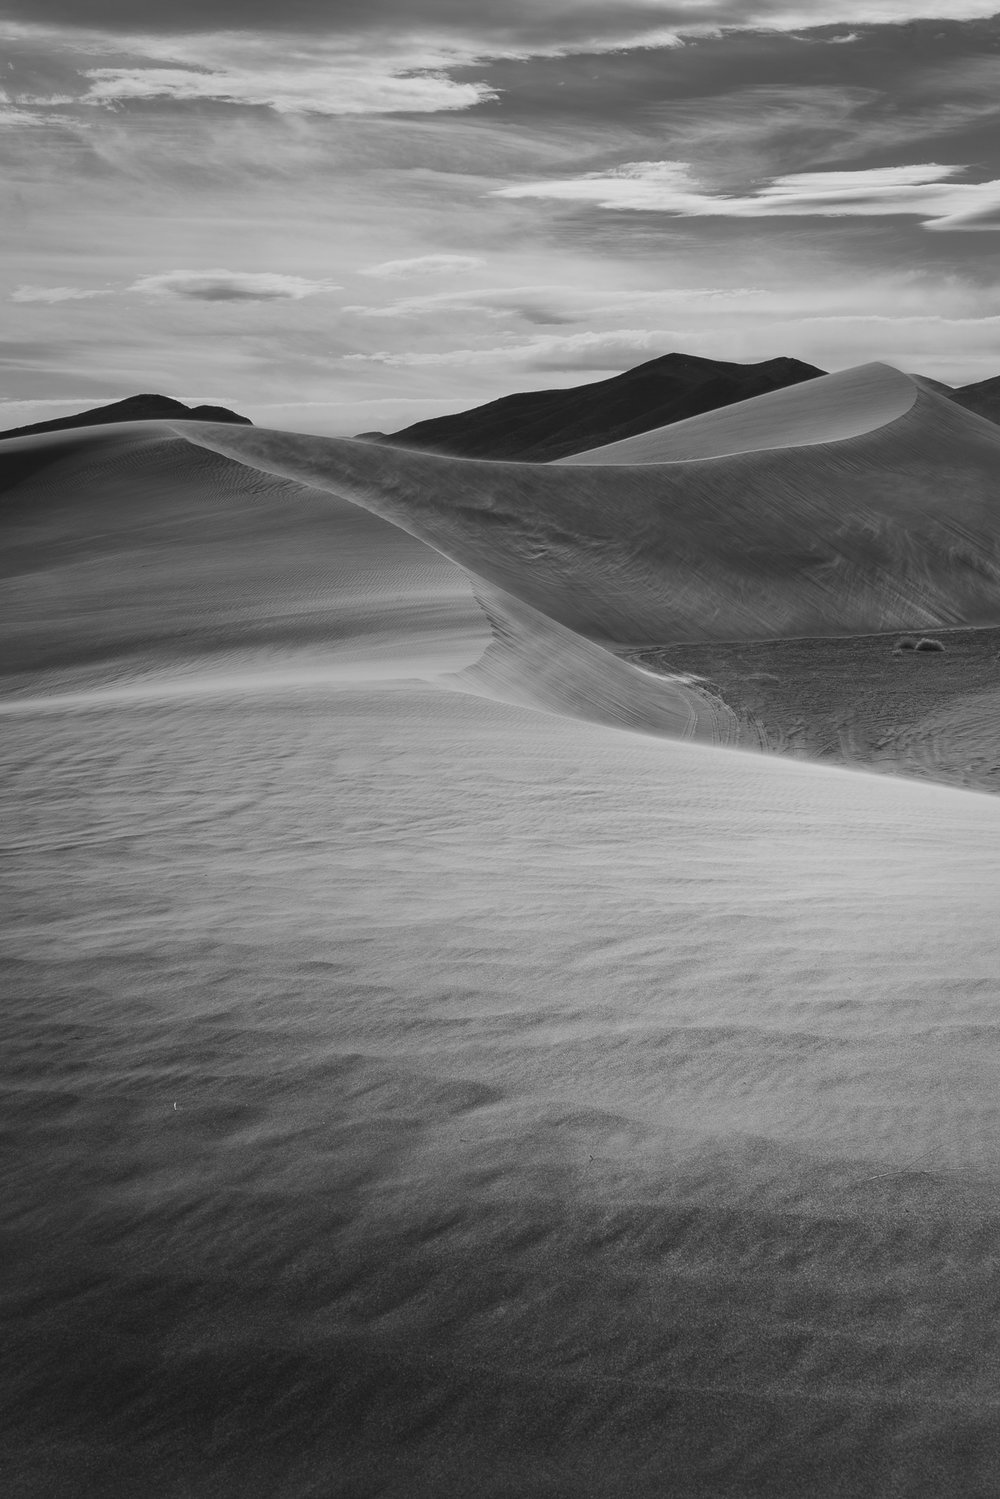 Big Dune, Outside Death Valley - Copyright Kris Vockler